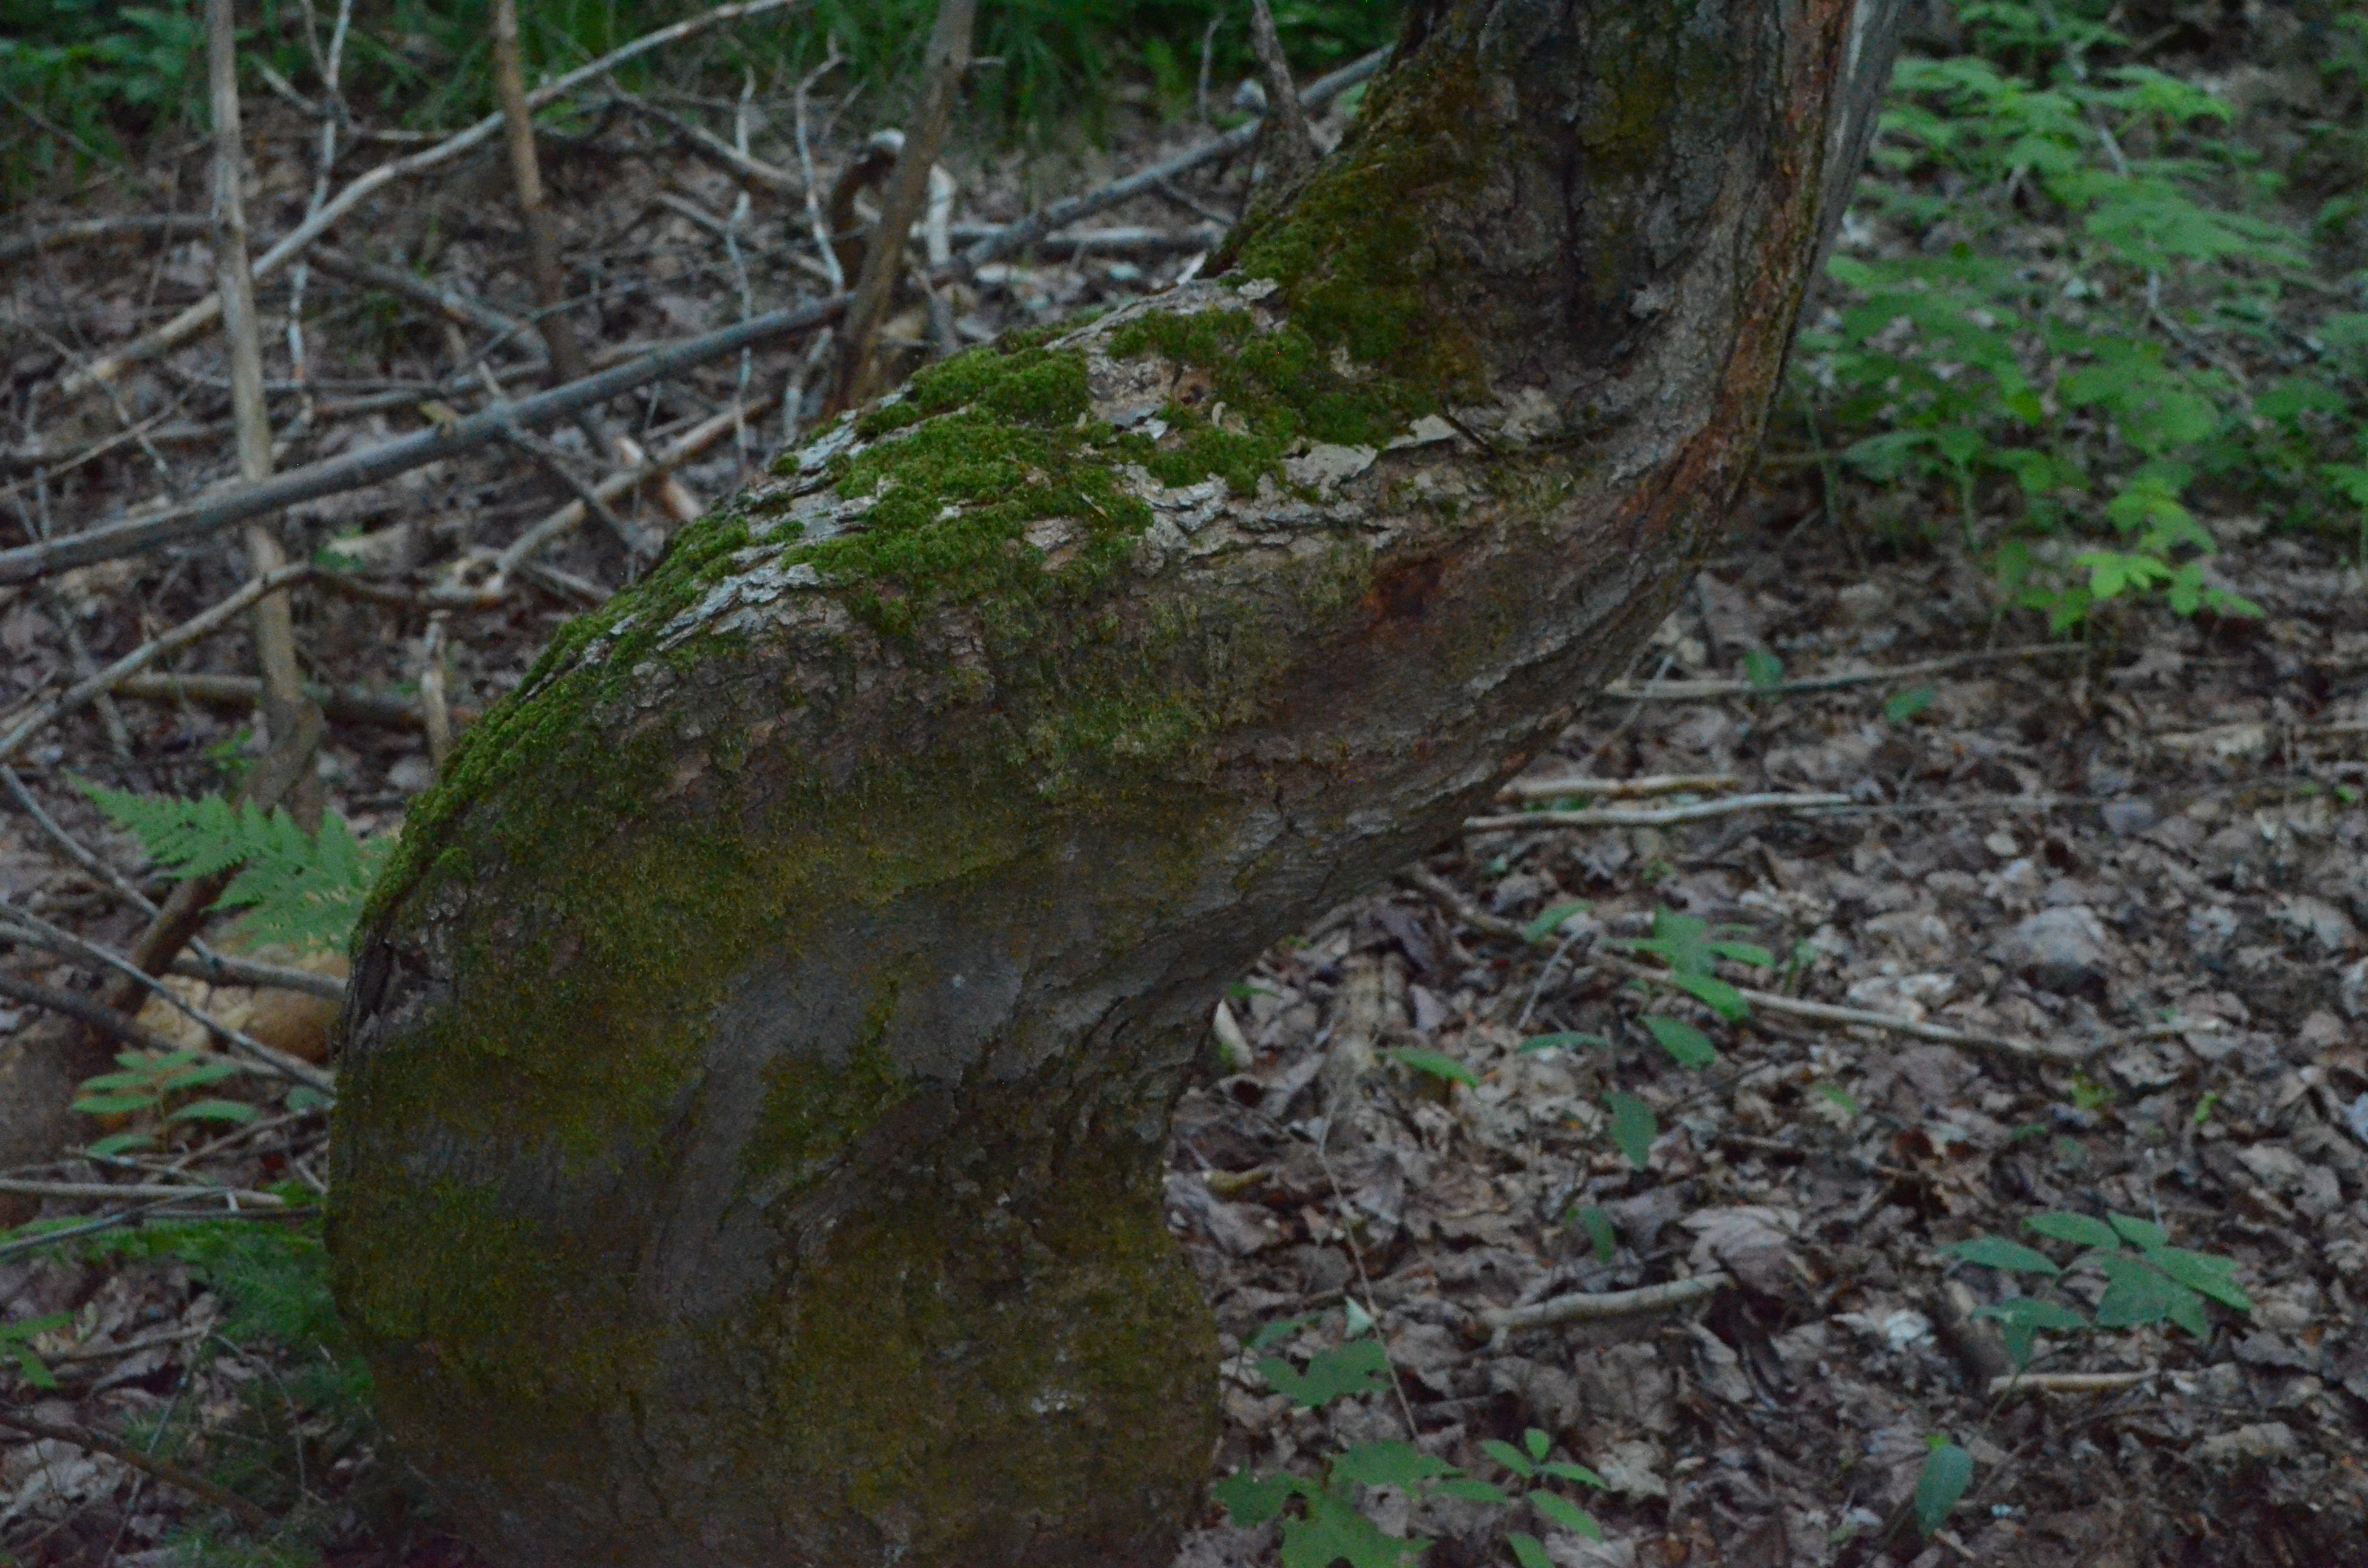 tree trunk, forest, tree, nature, no people, outdoors, growth, day, animal themes, grass, beauty in nature, close-up